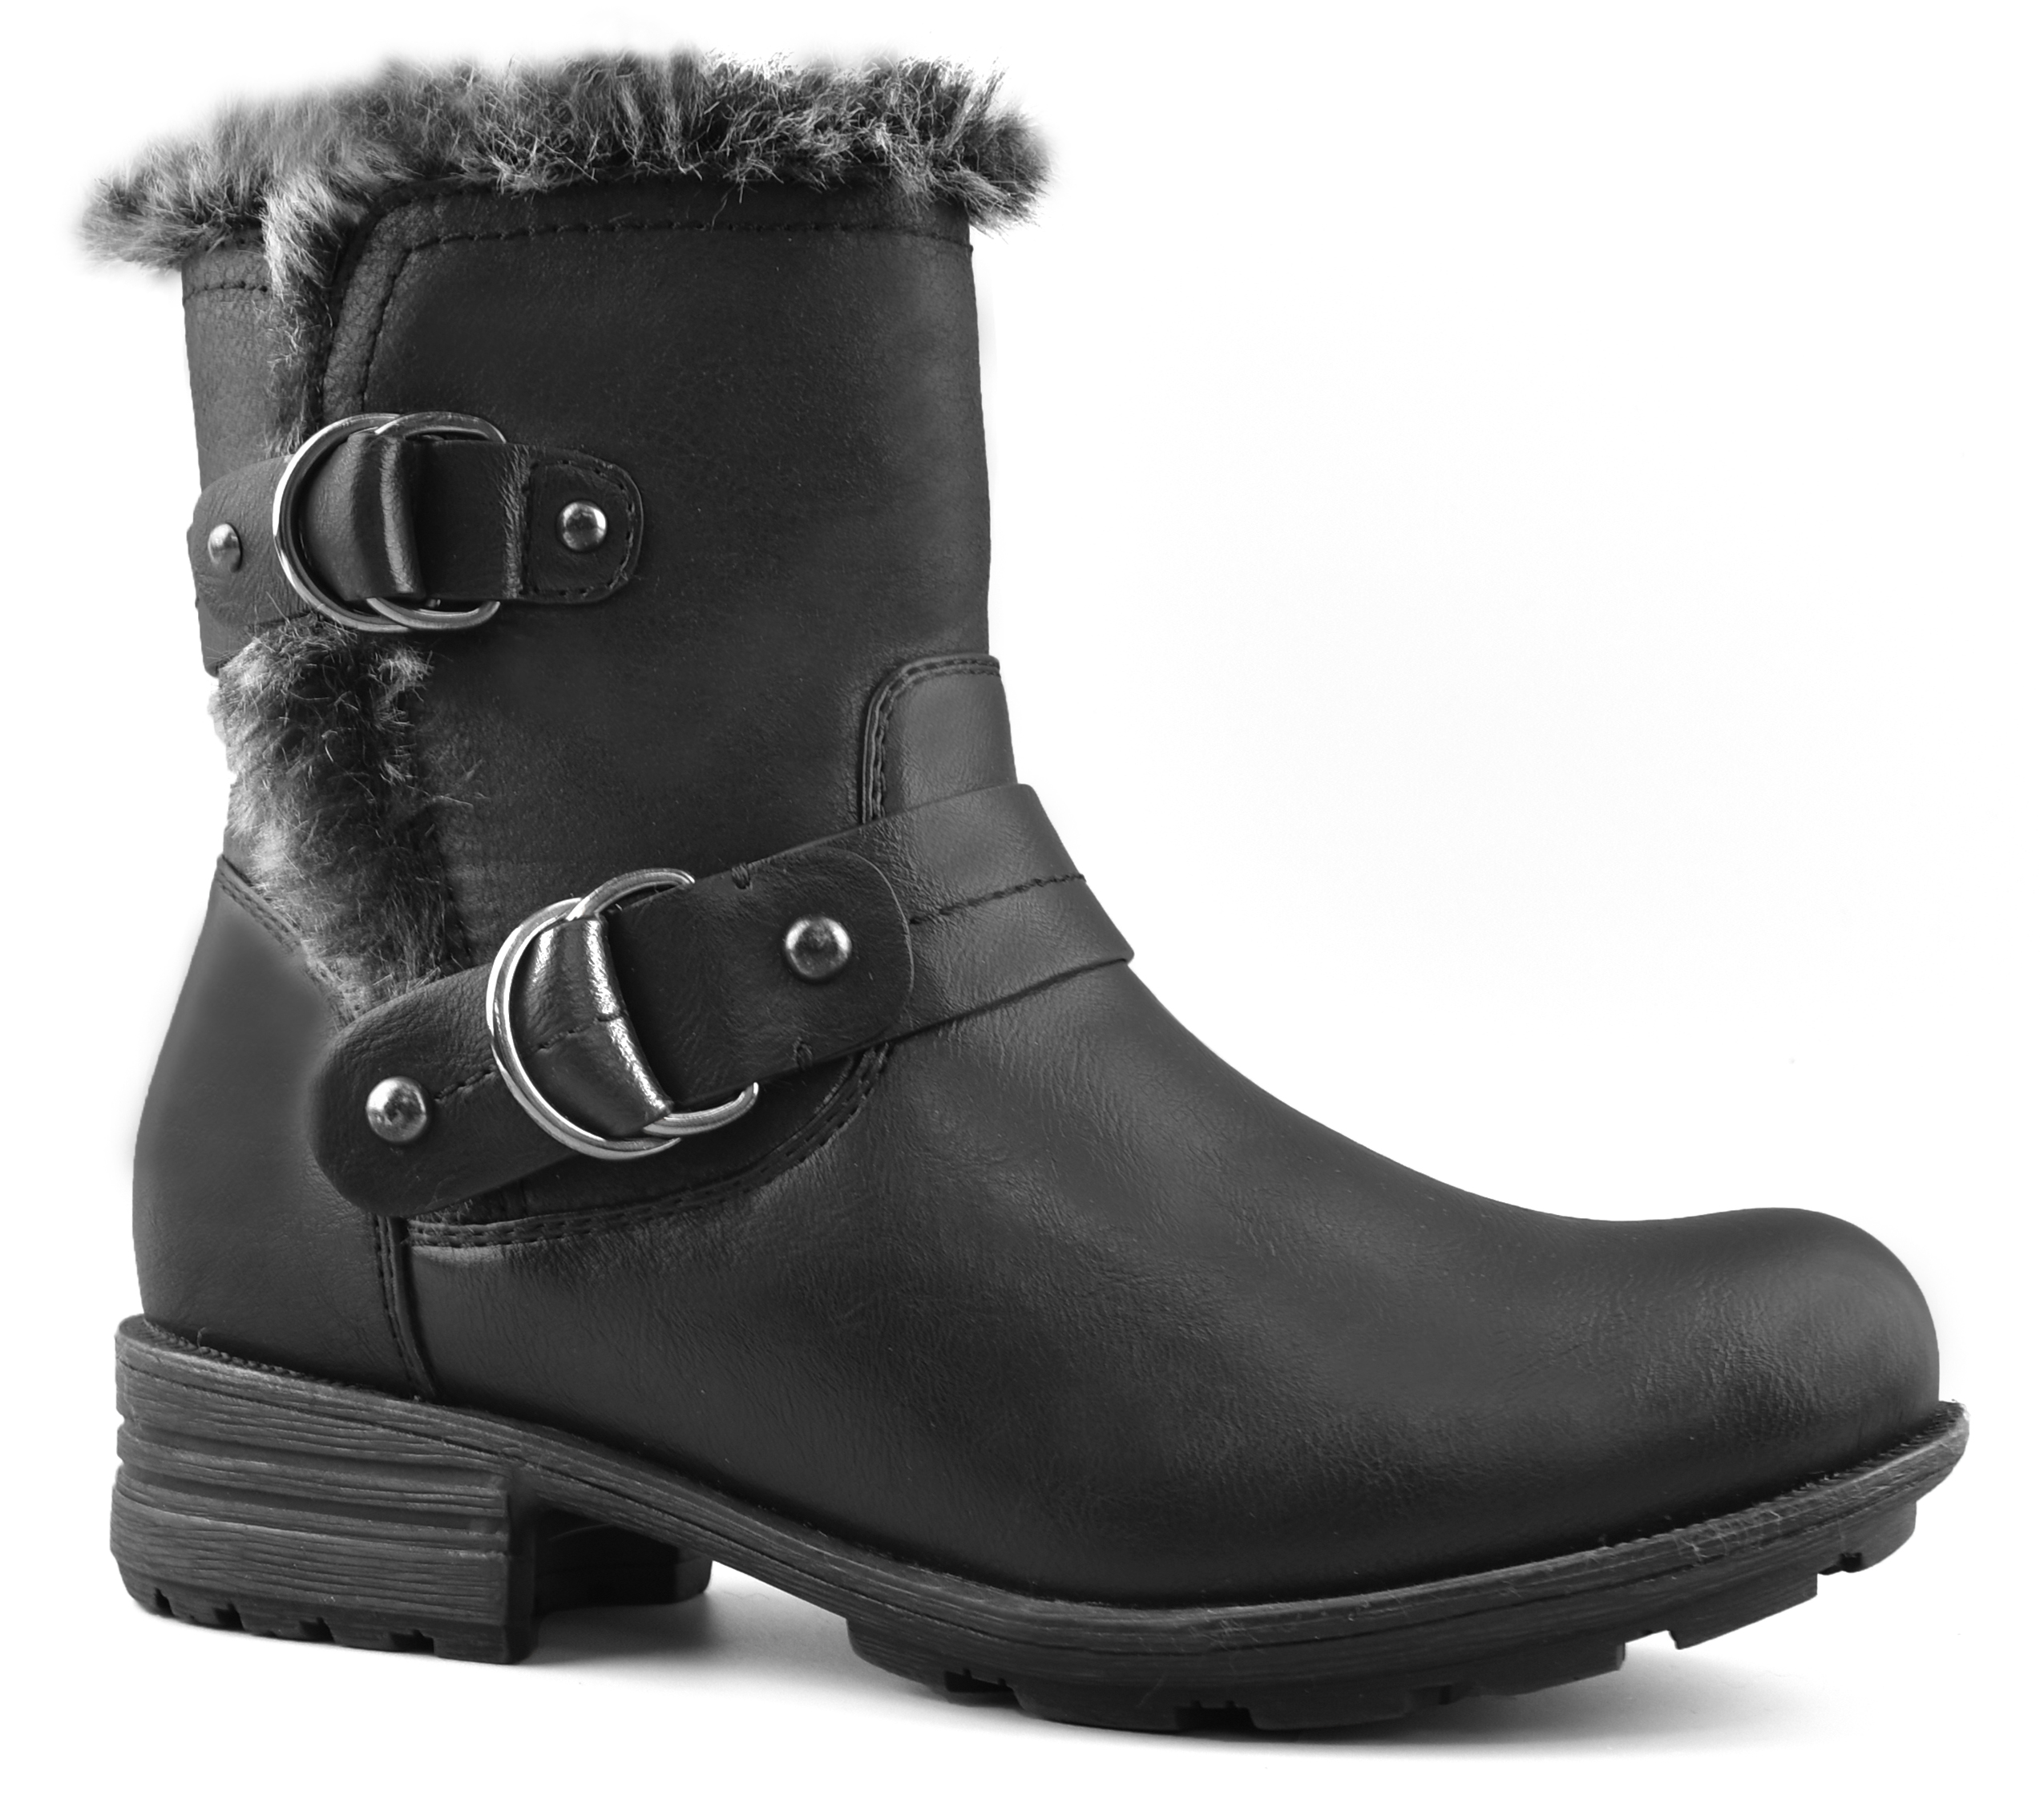 2019 year lifestyle- Boots Snow women size 12